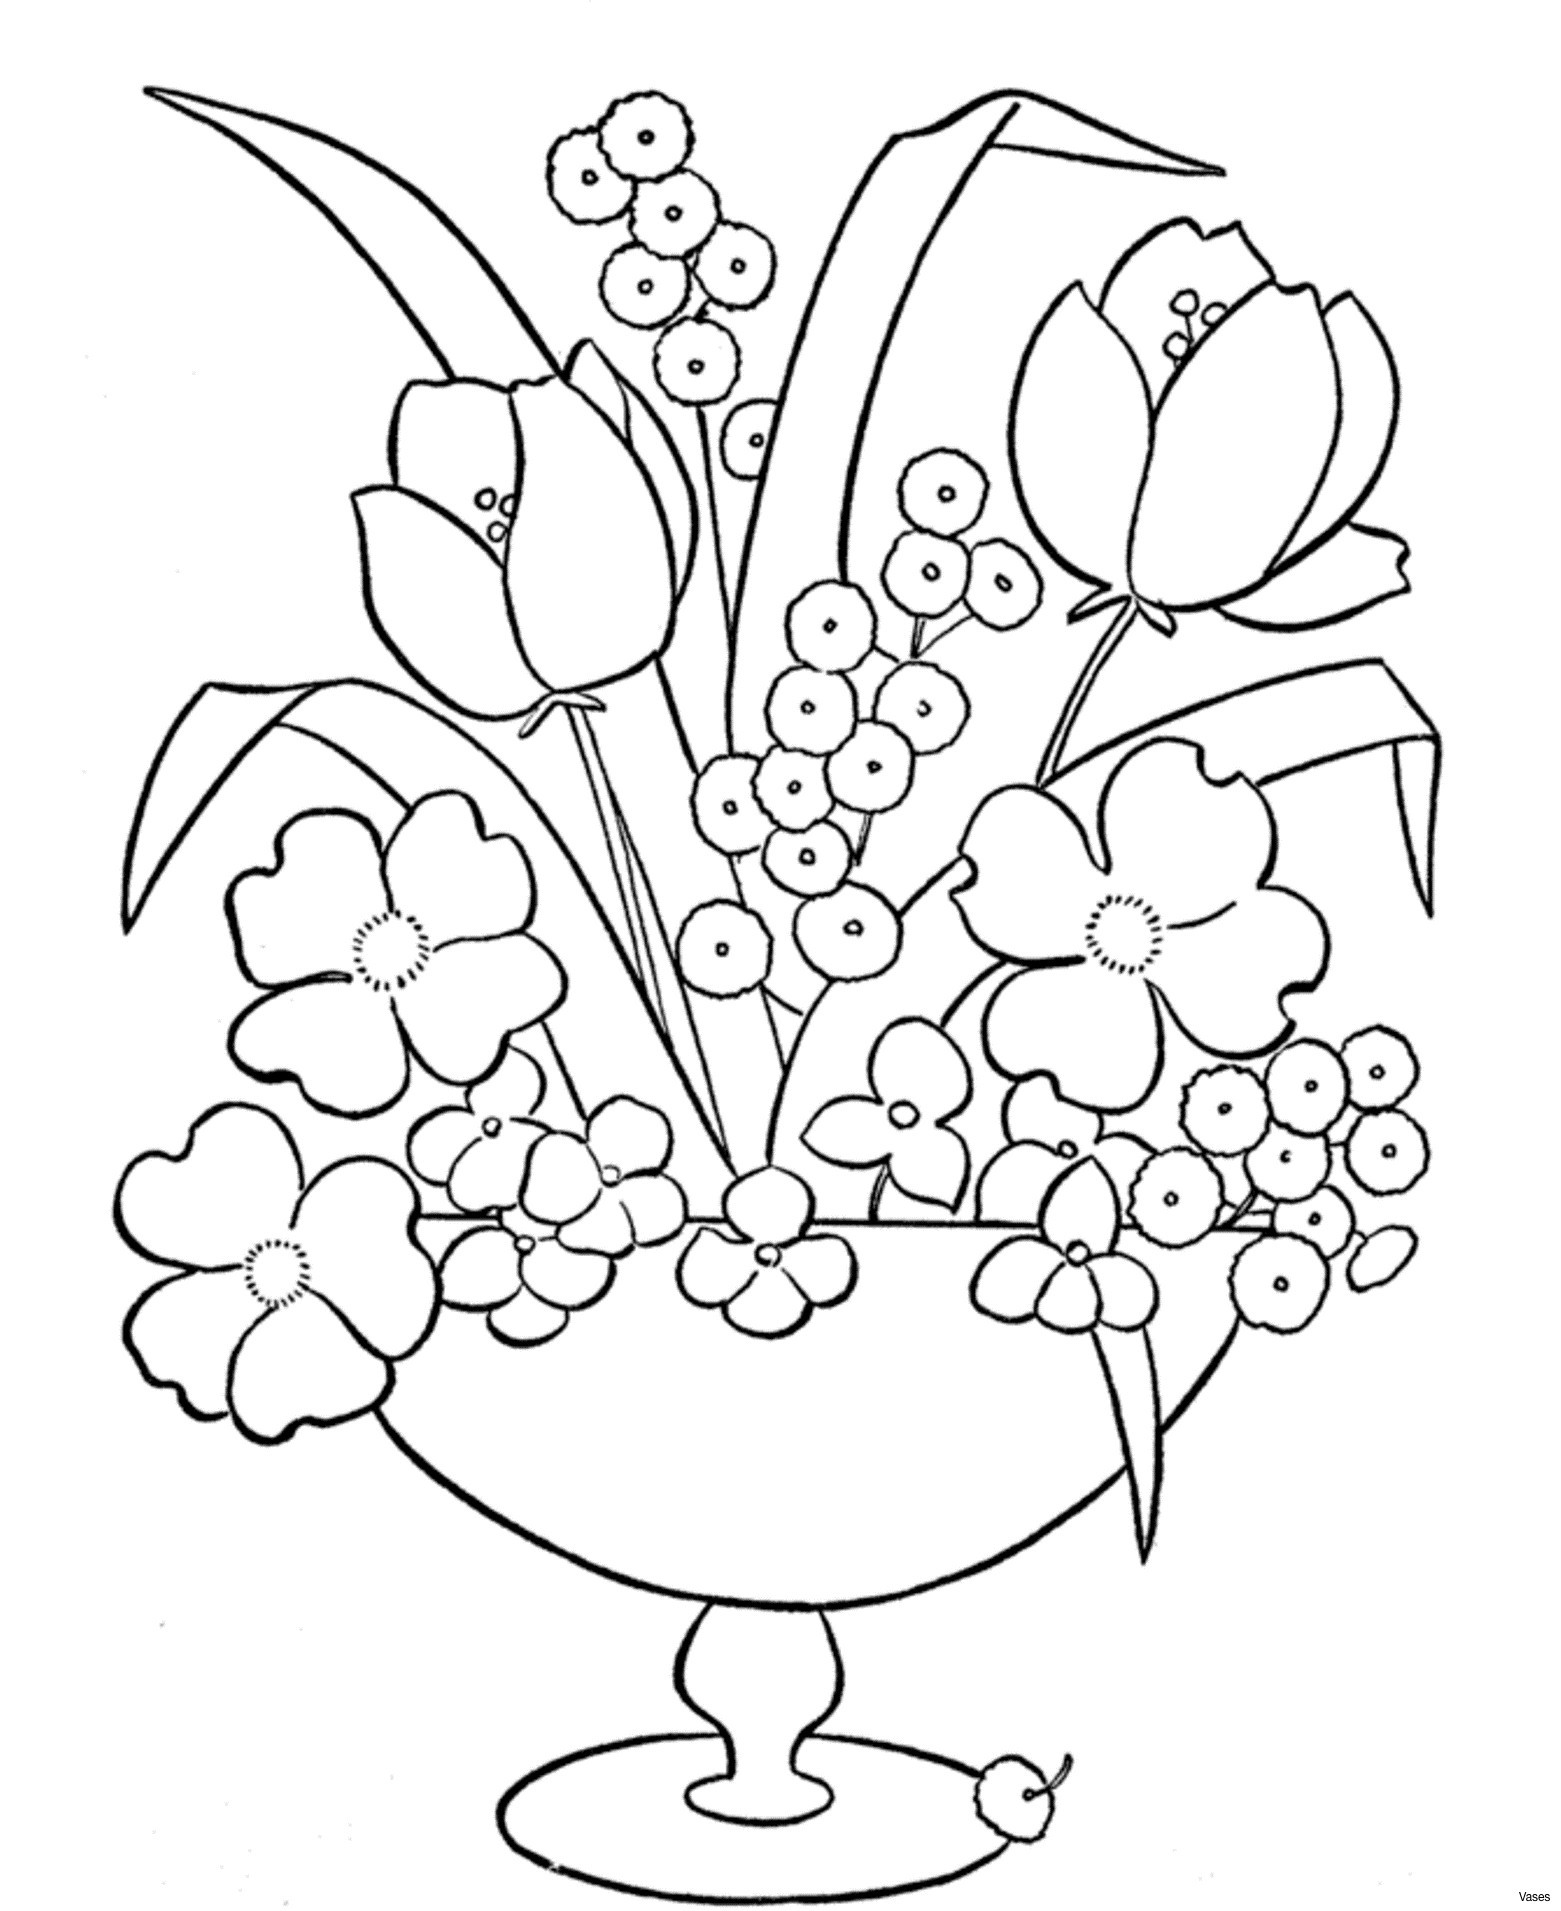 flower vase painting of skateboard coloring sheets cool vases flower vase coloring page regarding skateboard coloring sheets cool vases flower vase coloring page pages flowers in a top i 0d